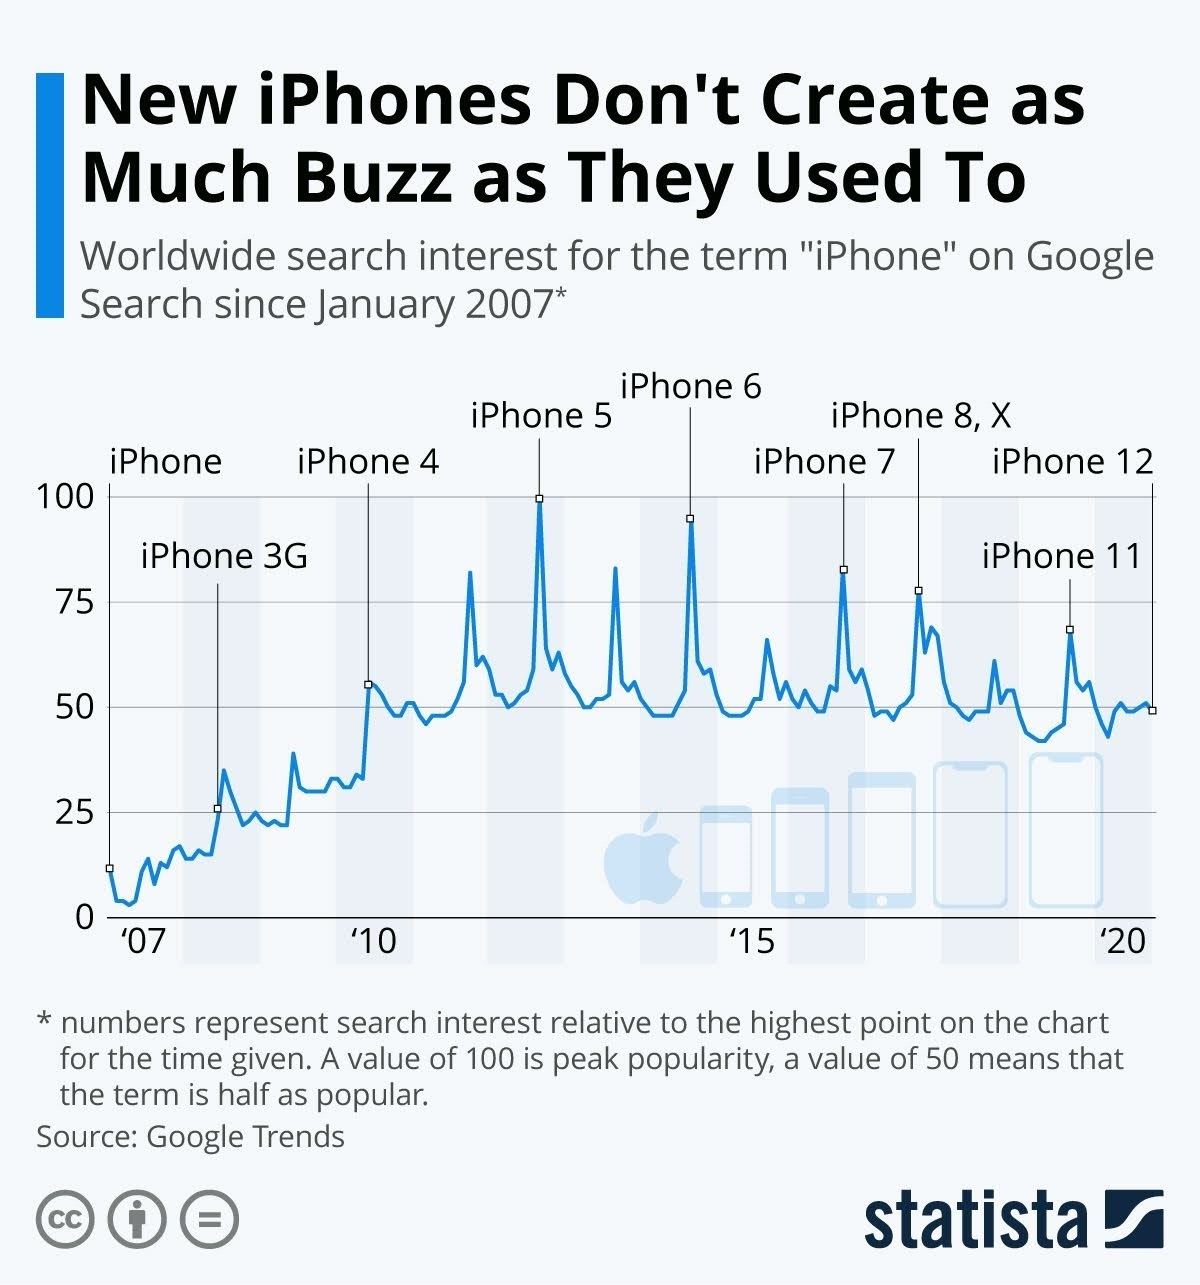 New iPhones Don't Create as Much Buzz as They Used To #Infographic